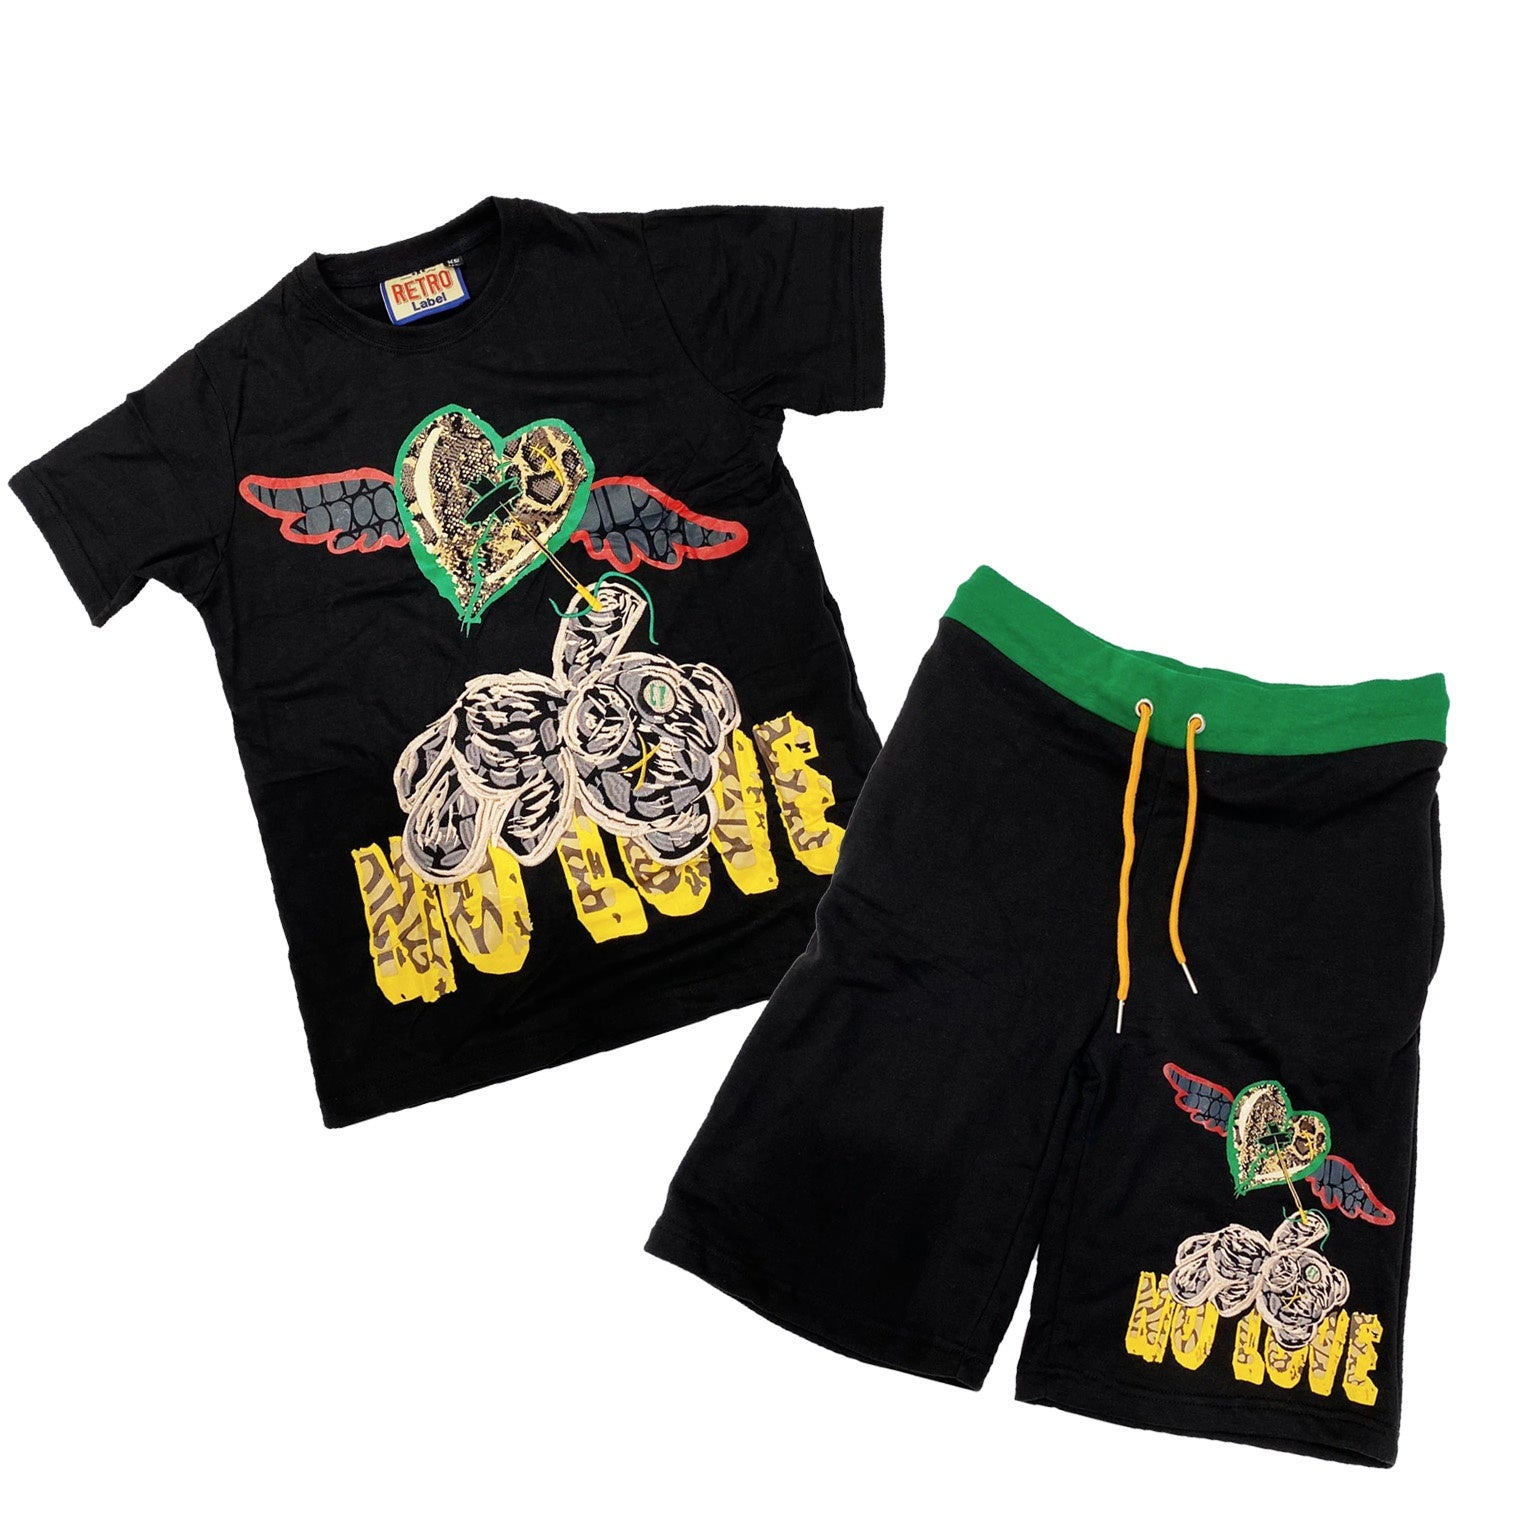 No Love SS Set (Blk/Red/Grn/Yllw) /D18